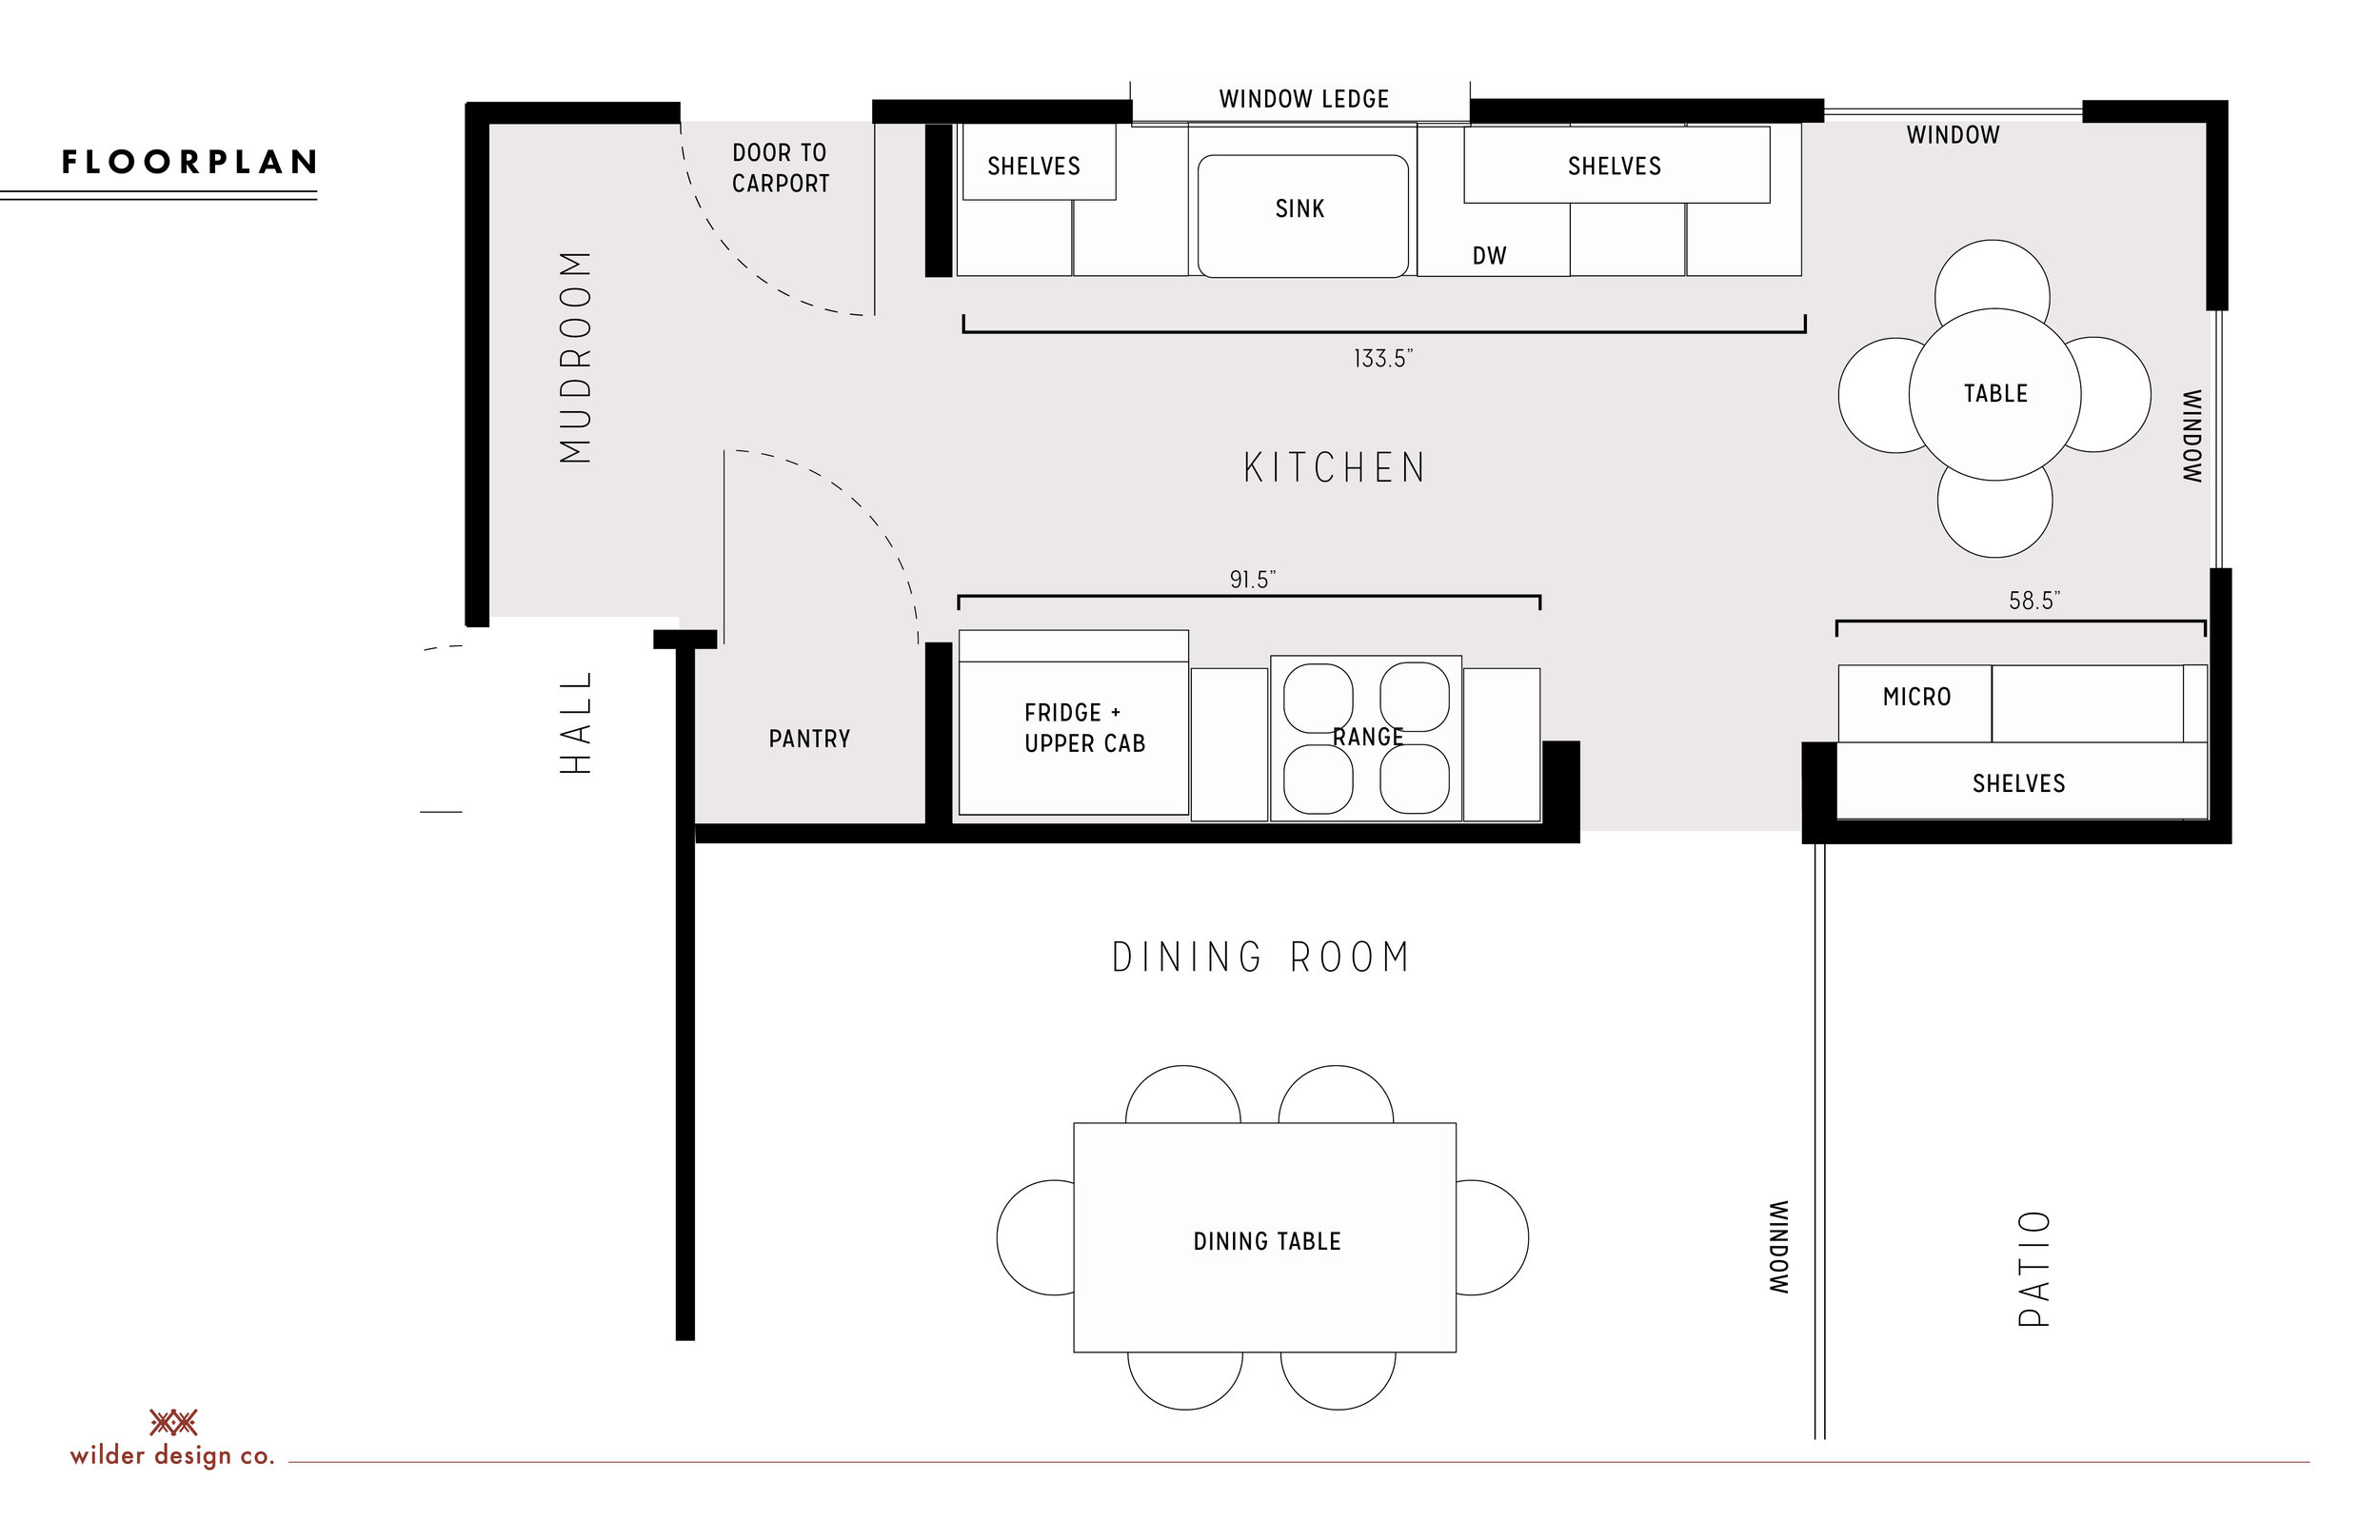 Kitchen_Plan_0430187.jpg